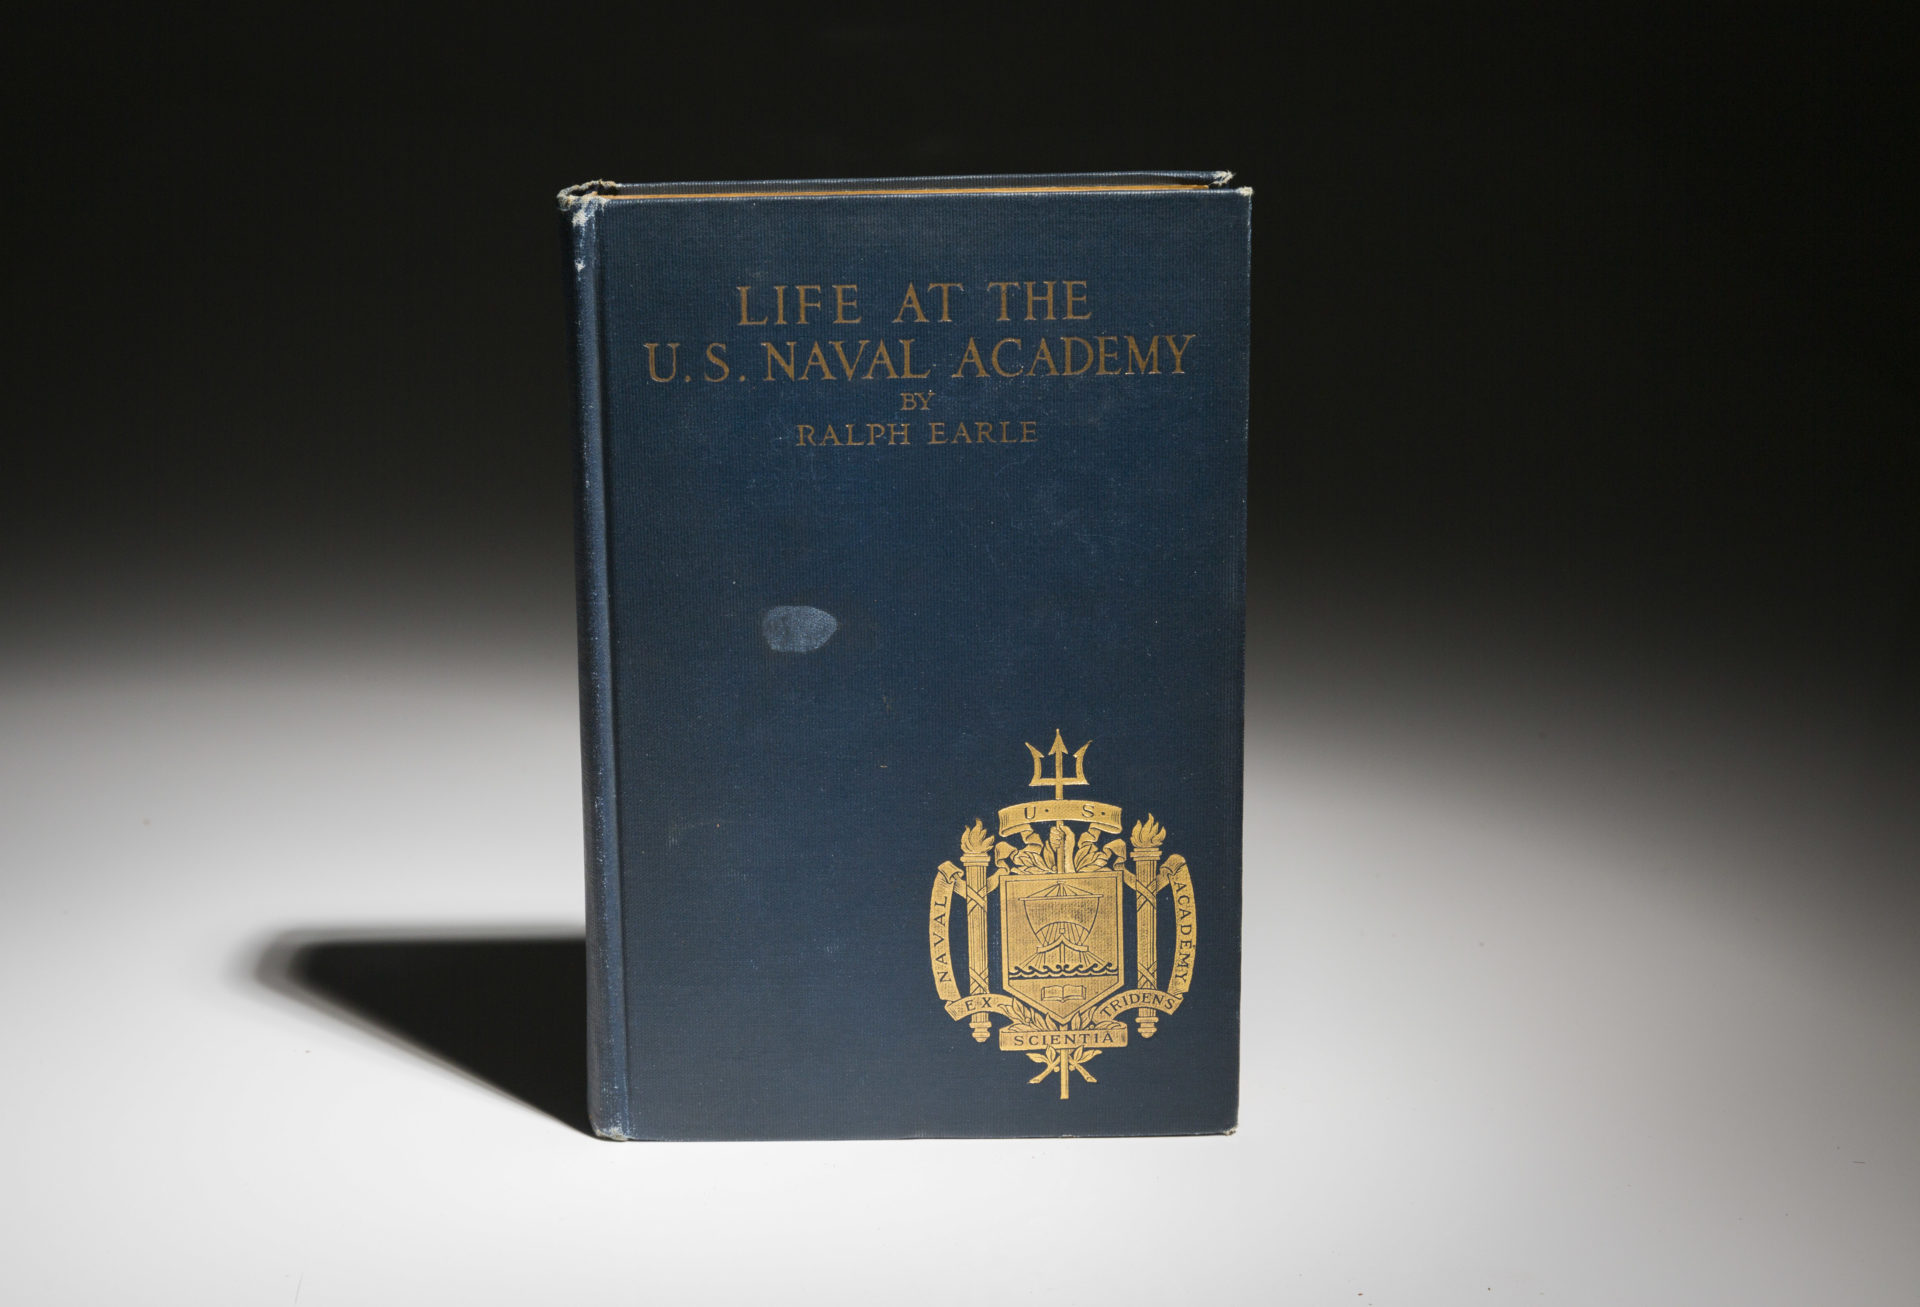 Life at the US Naval Academy:The Making of the American Naval Office with Intro by Franklin D. Roosevelt